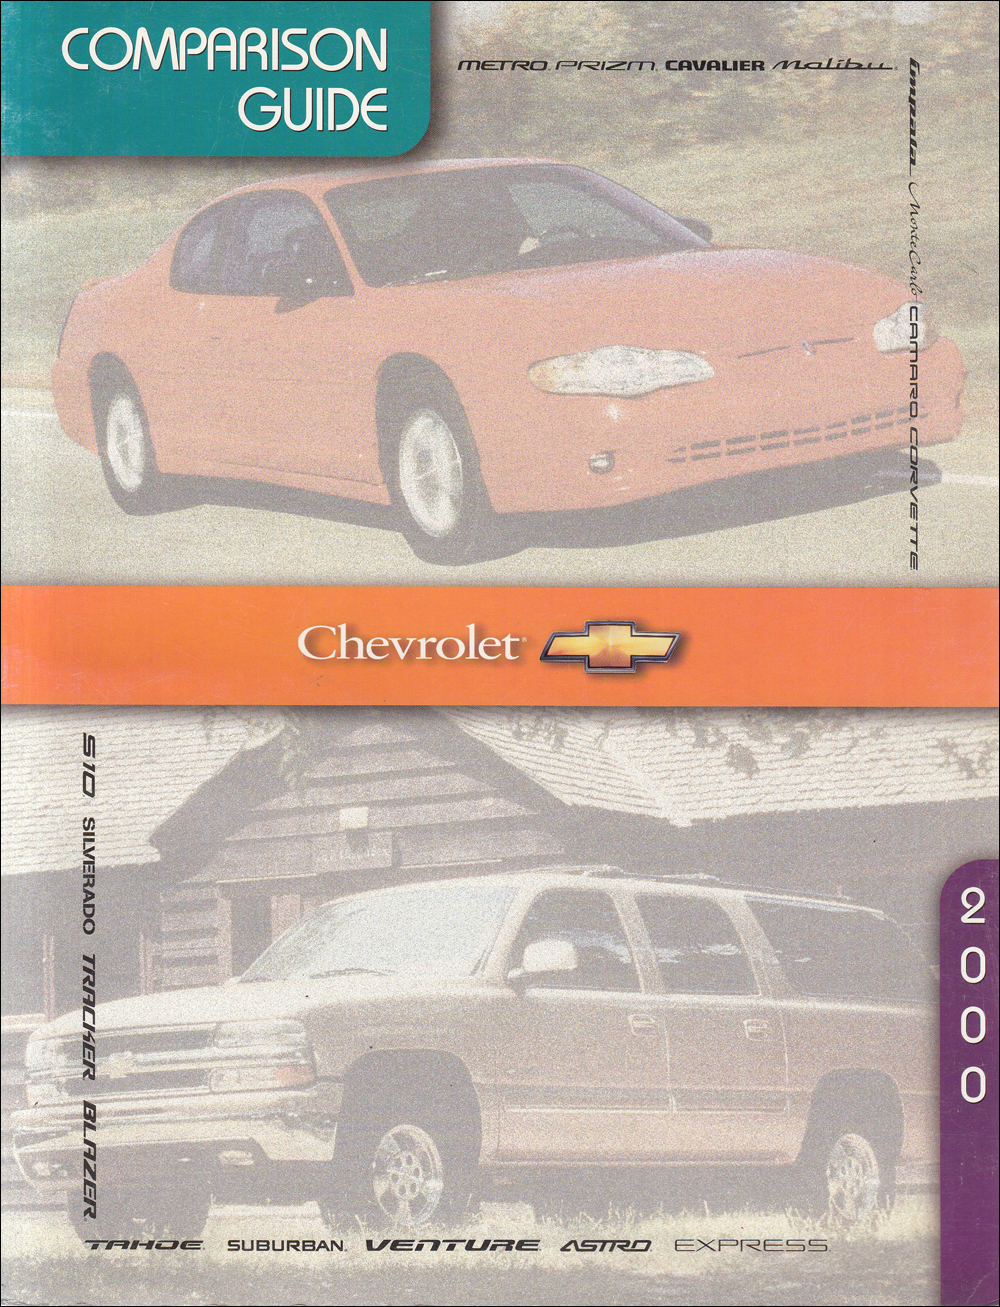 2000 Chevrolet Competitive Comparison Dealer Album Original